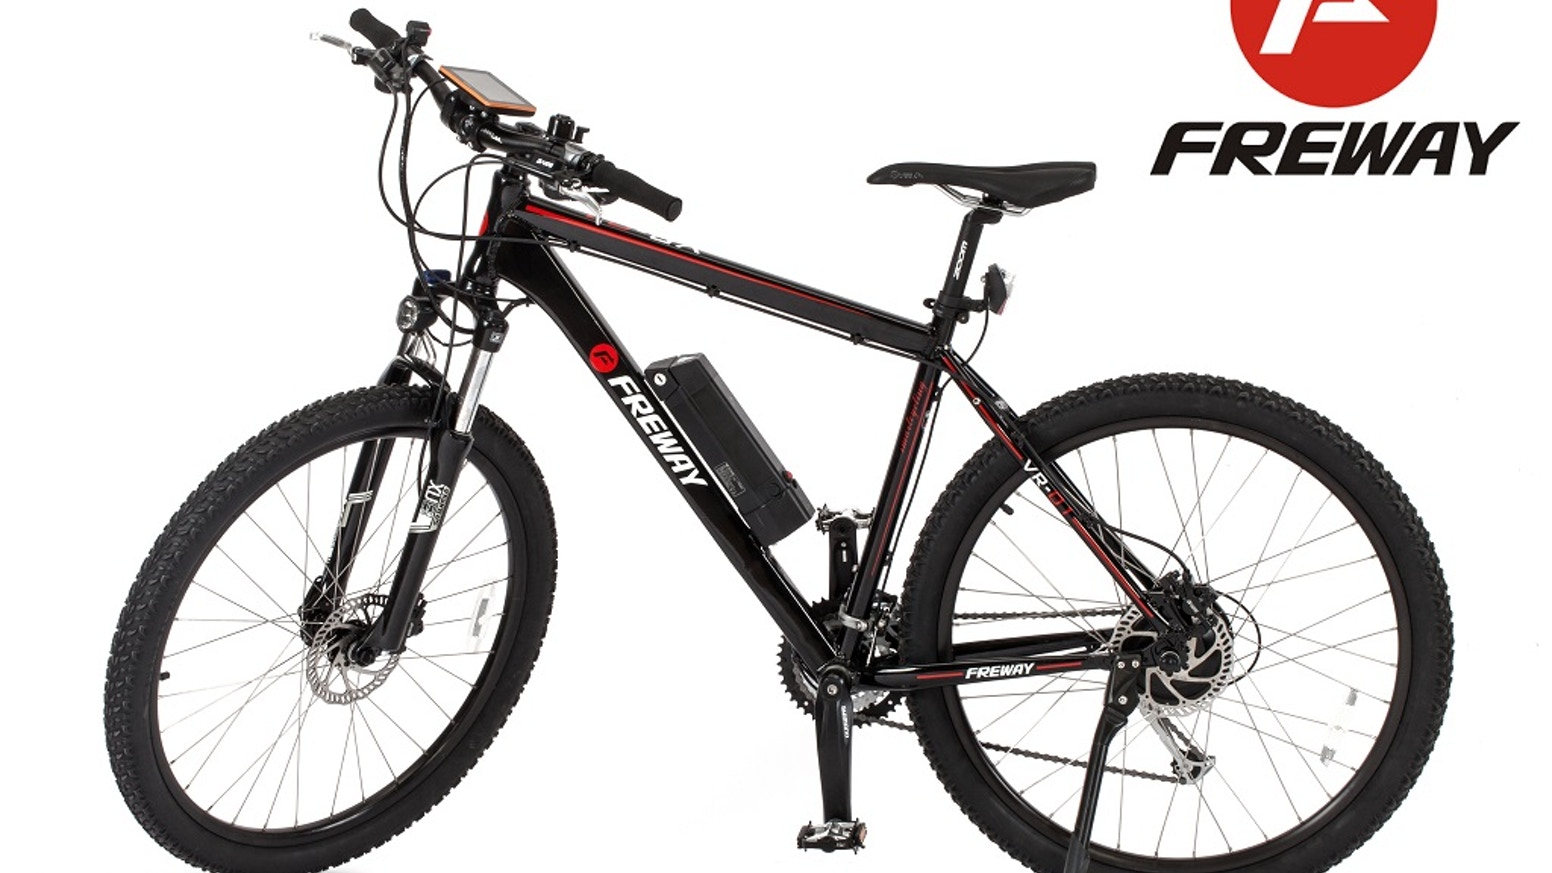 freway 27 speed pedal assist smart ebike at 499 by. Black Bedroom Furniture Sets. Home Design Ideas